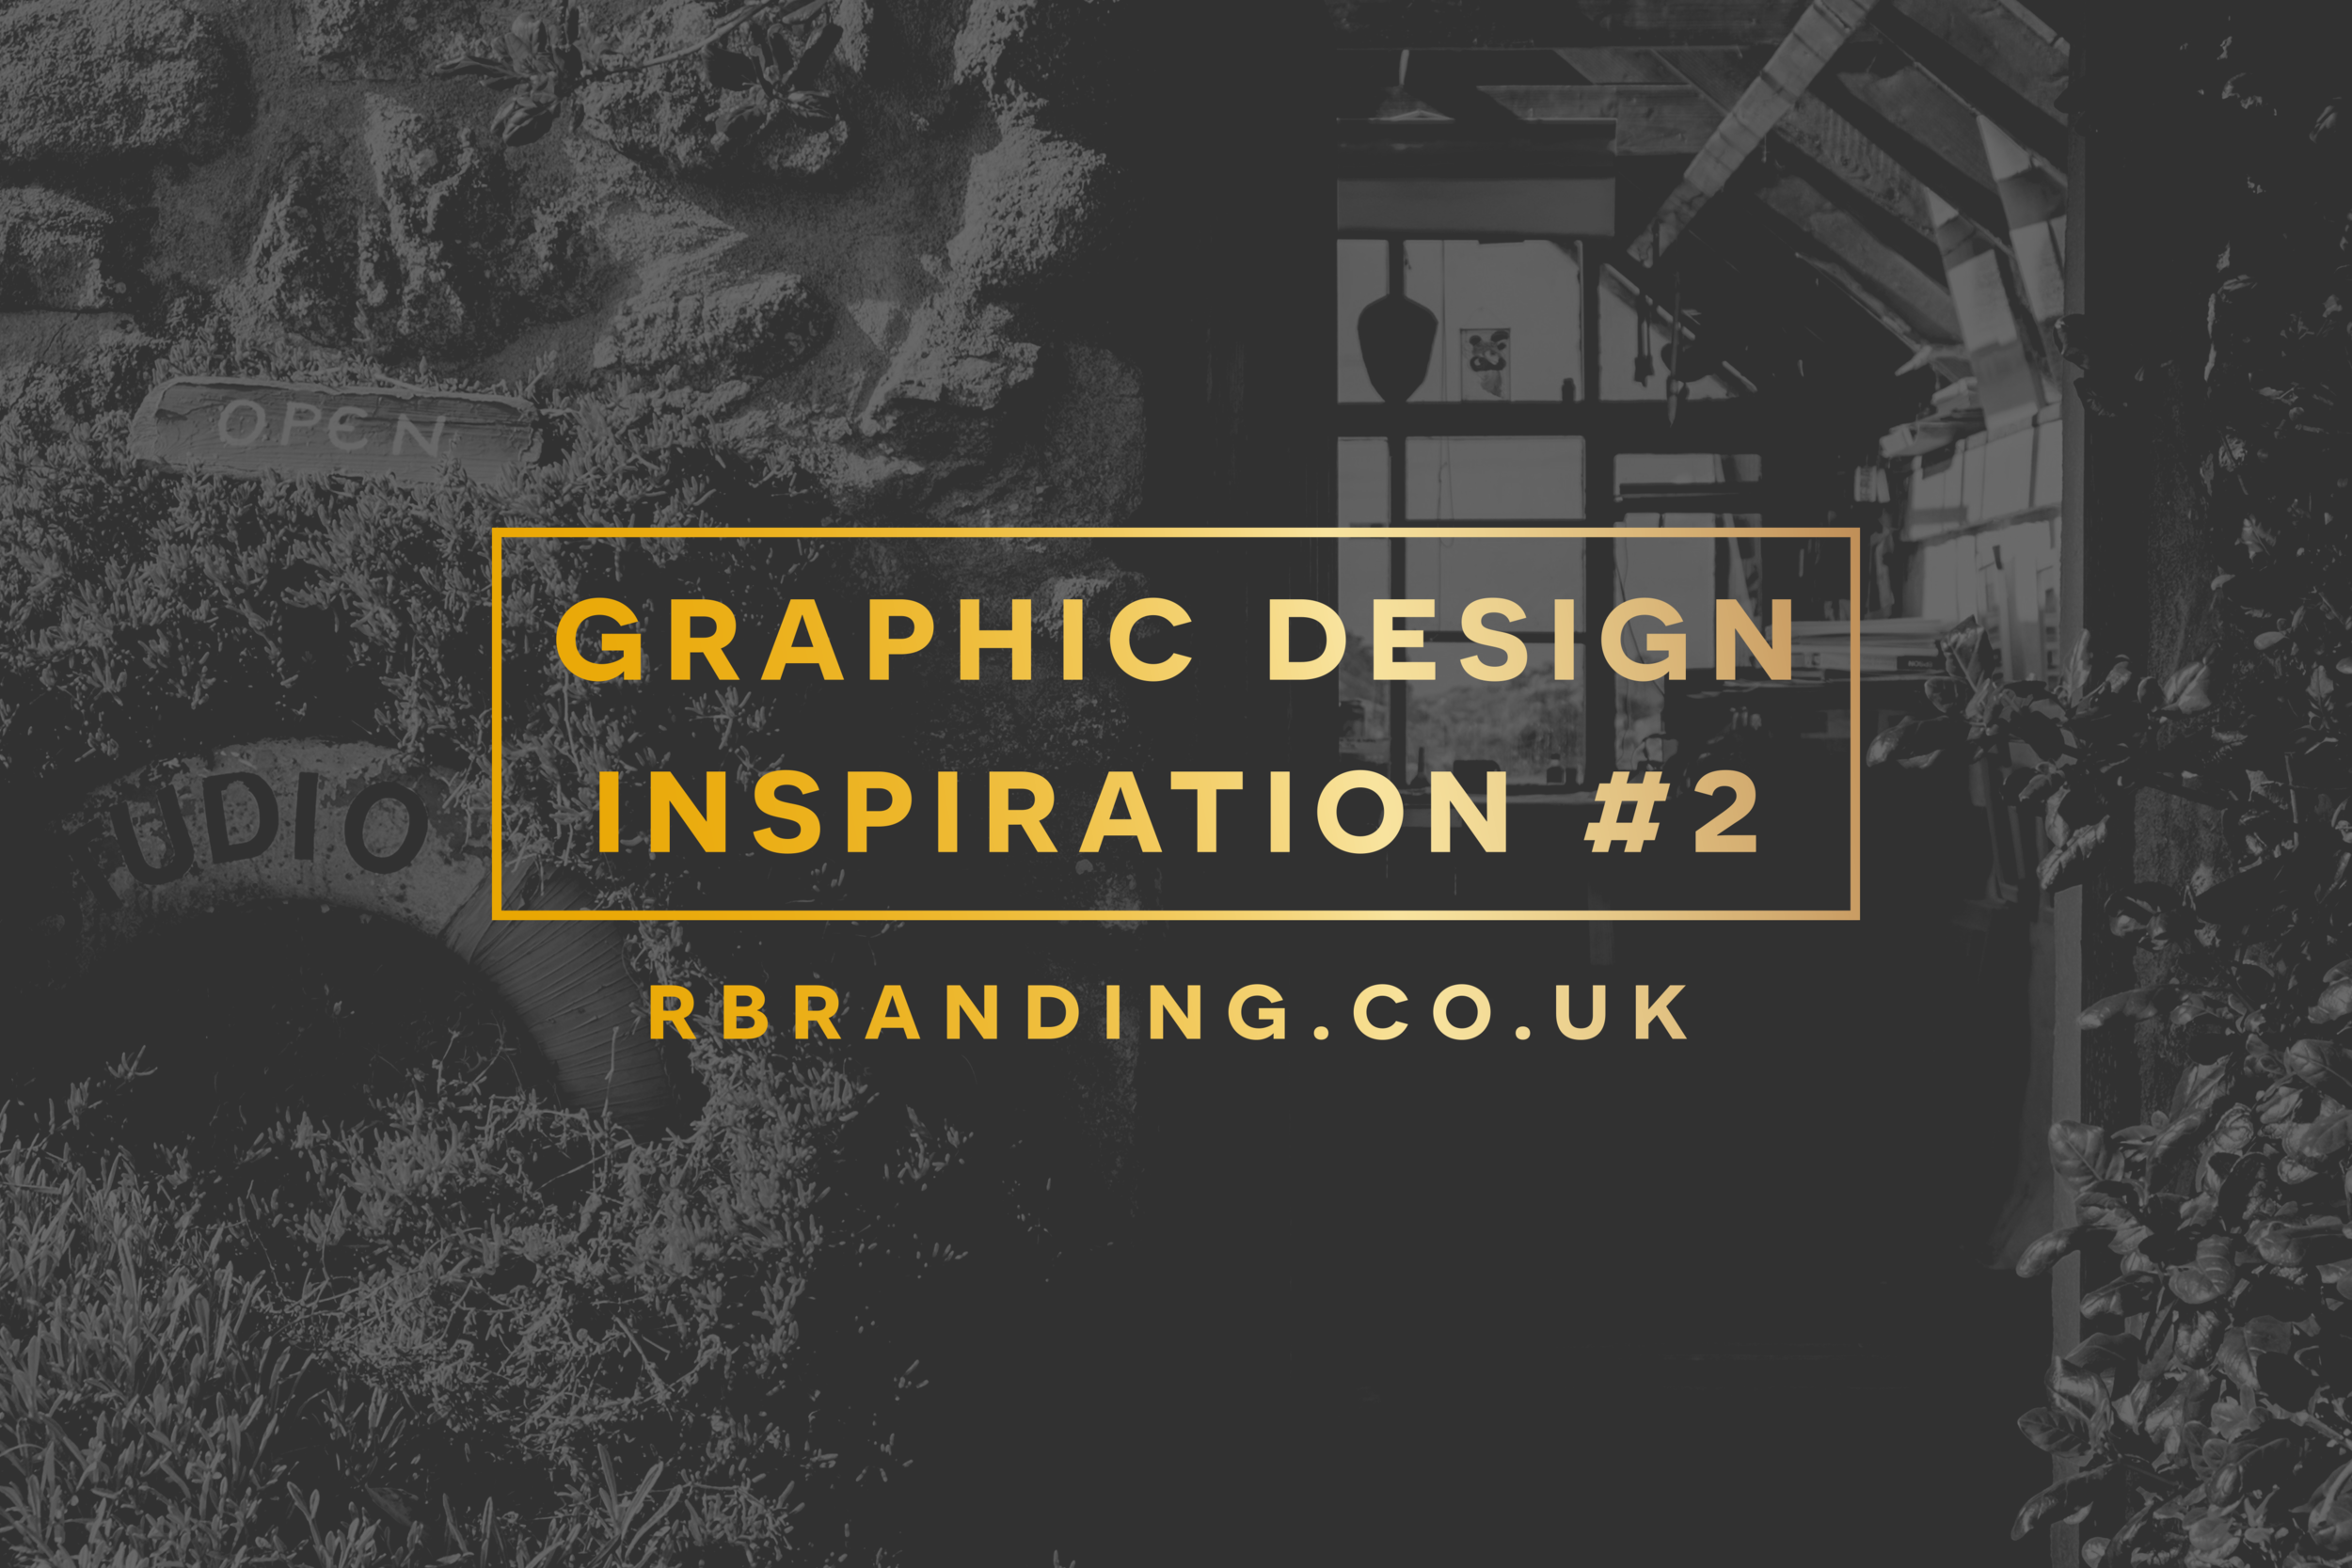 Graphic Design Inspiration #2 - 19/04/2016  http://rbranding.co.uk/blog/2016/4/19/graphic-design-inspiration-2-19042016